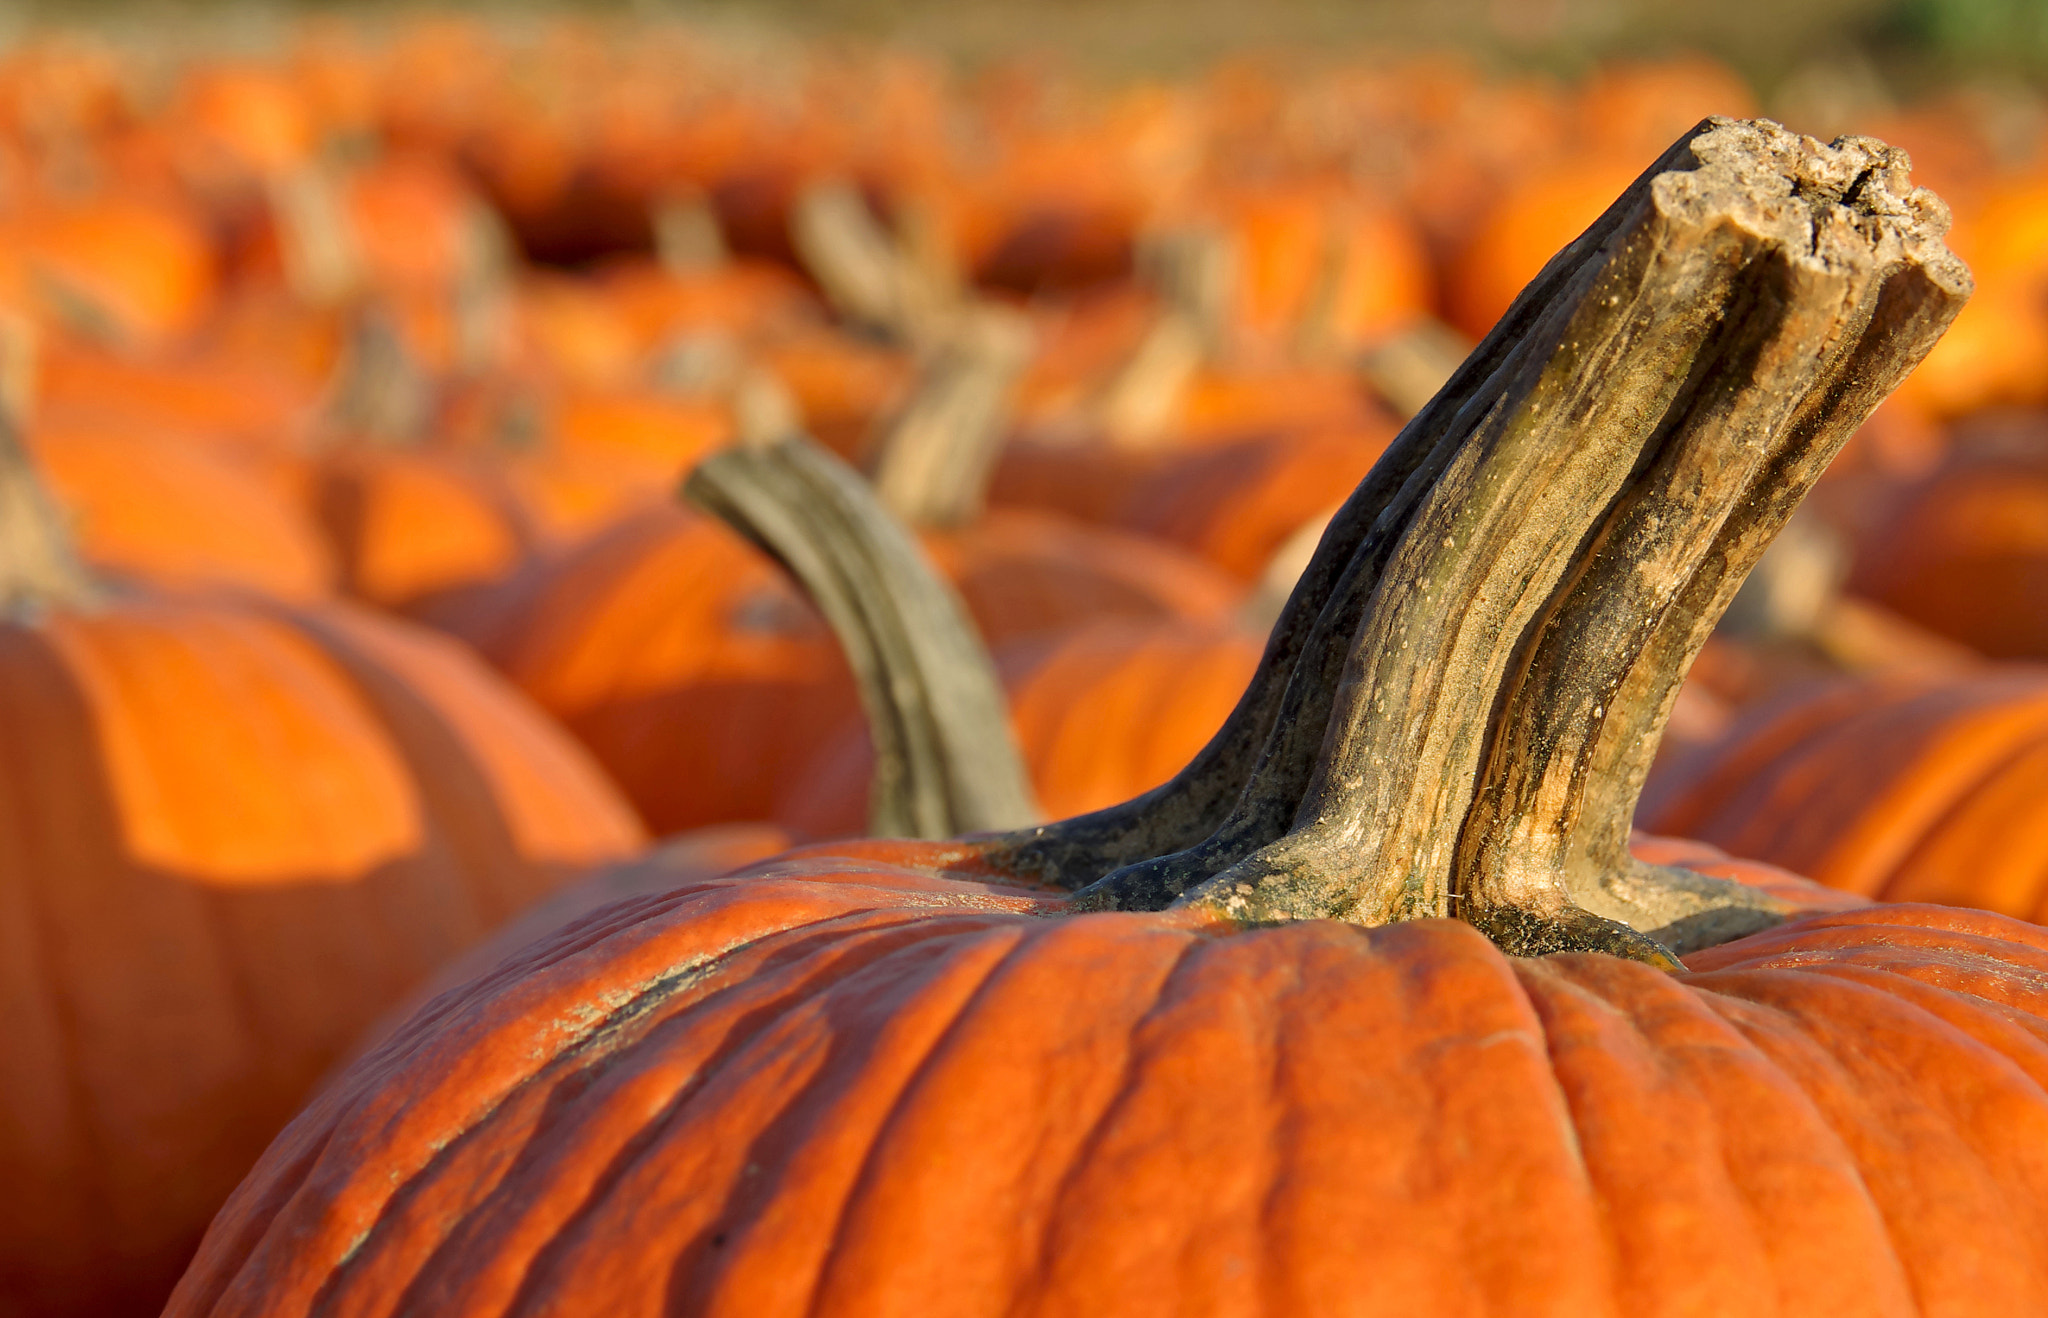 Photograph King of the pumpkins by Dean Cerrati on 500px